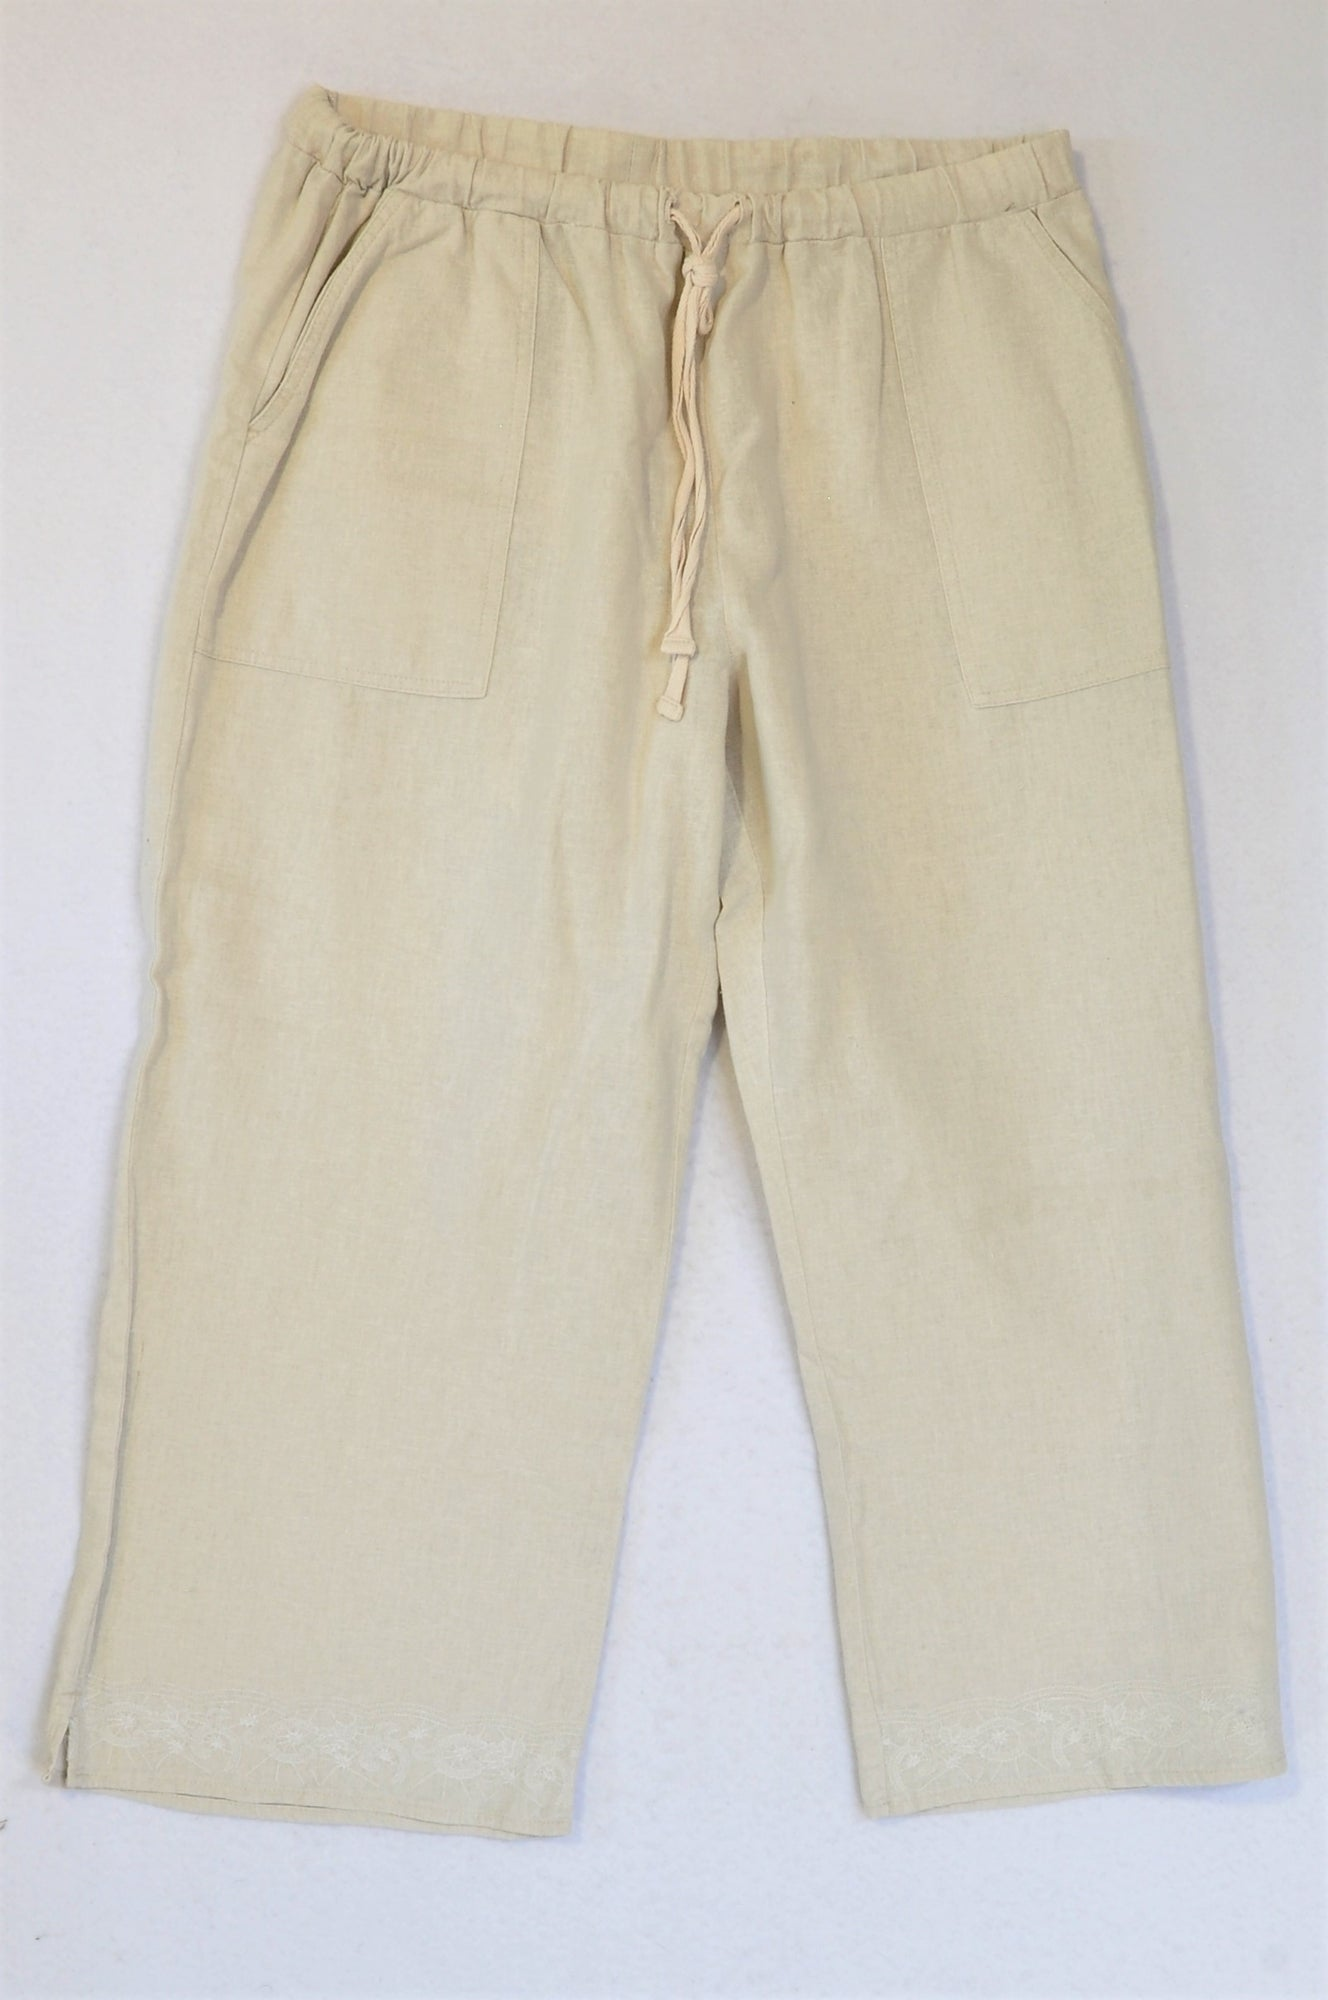 Unbranded Cream Pants Women Size 8